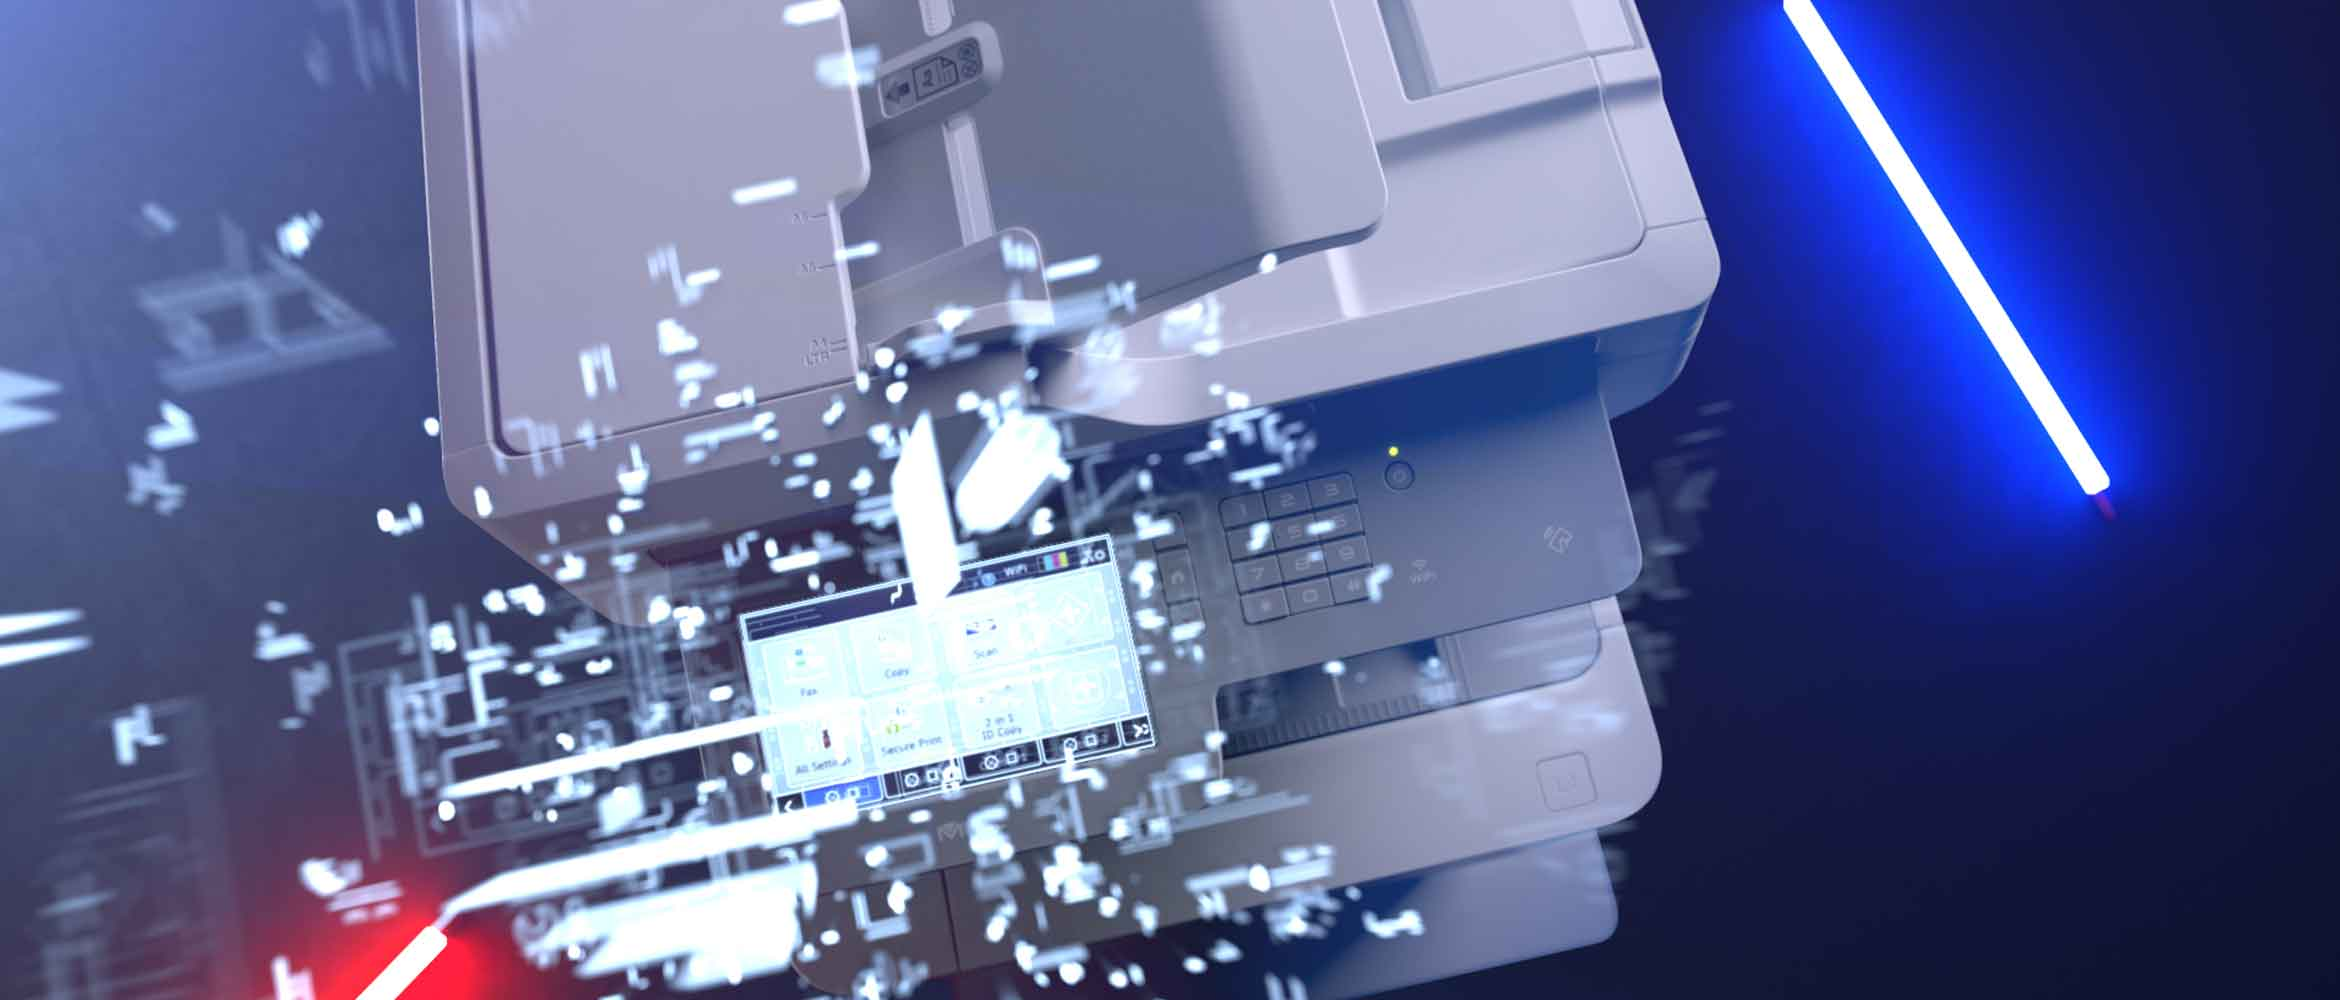 Brother printer with a focus on the user interface